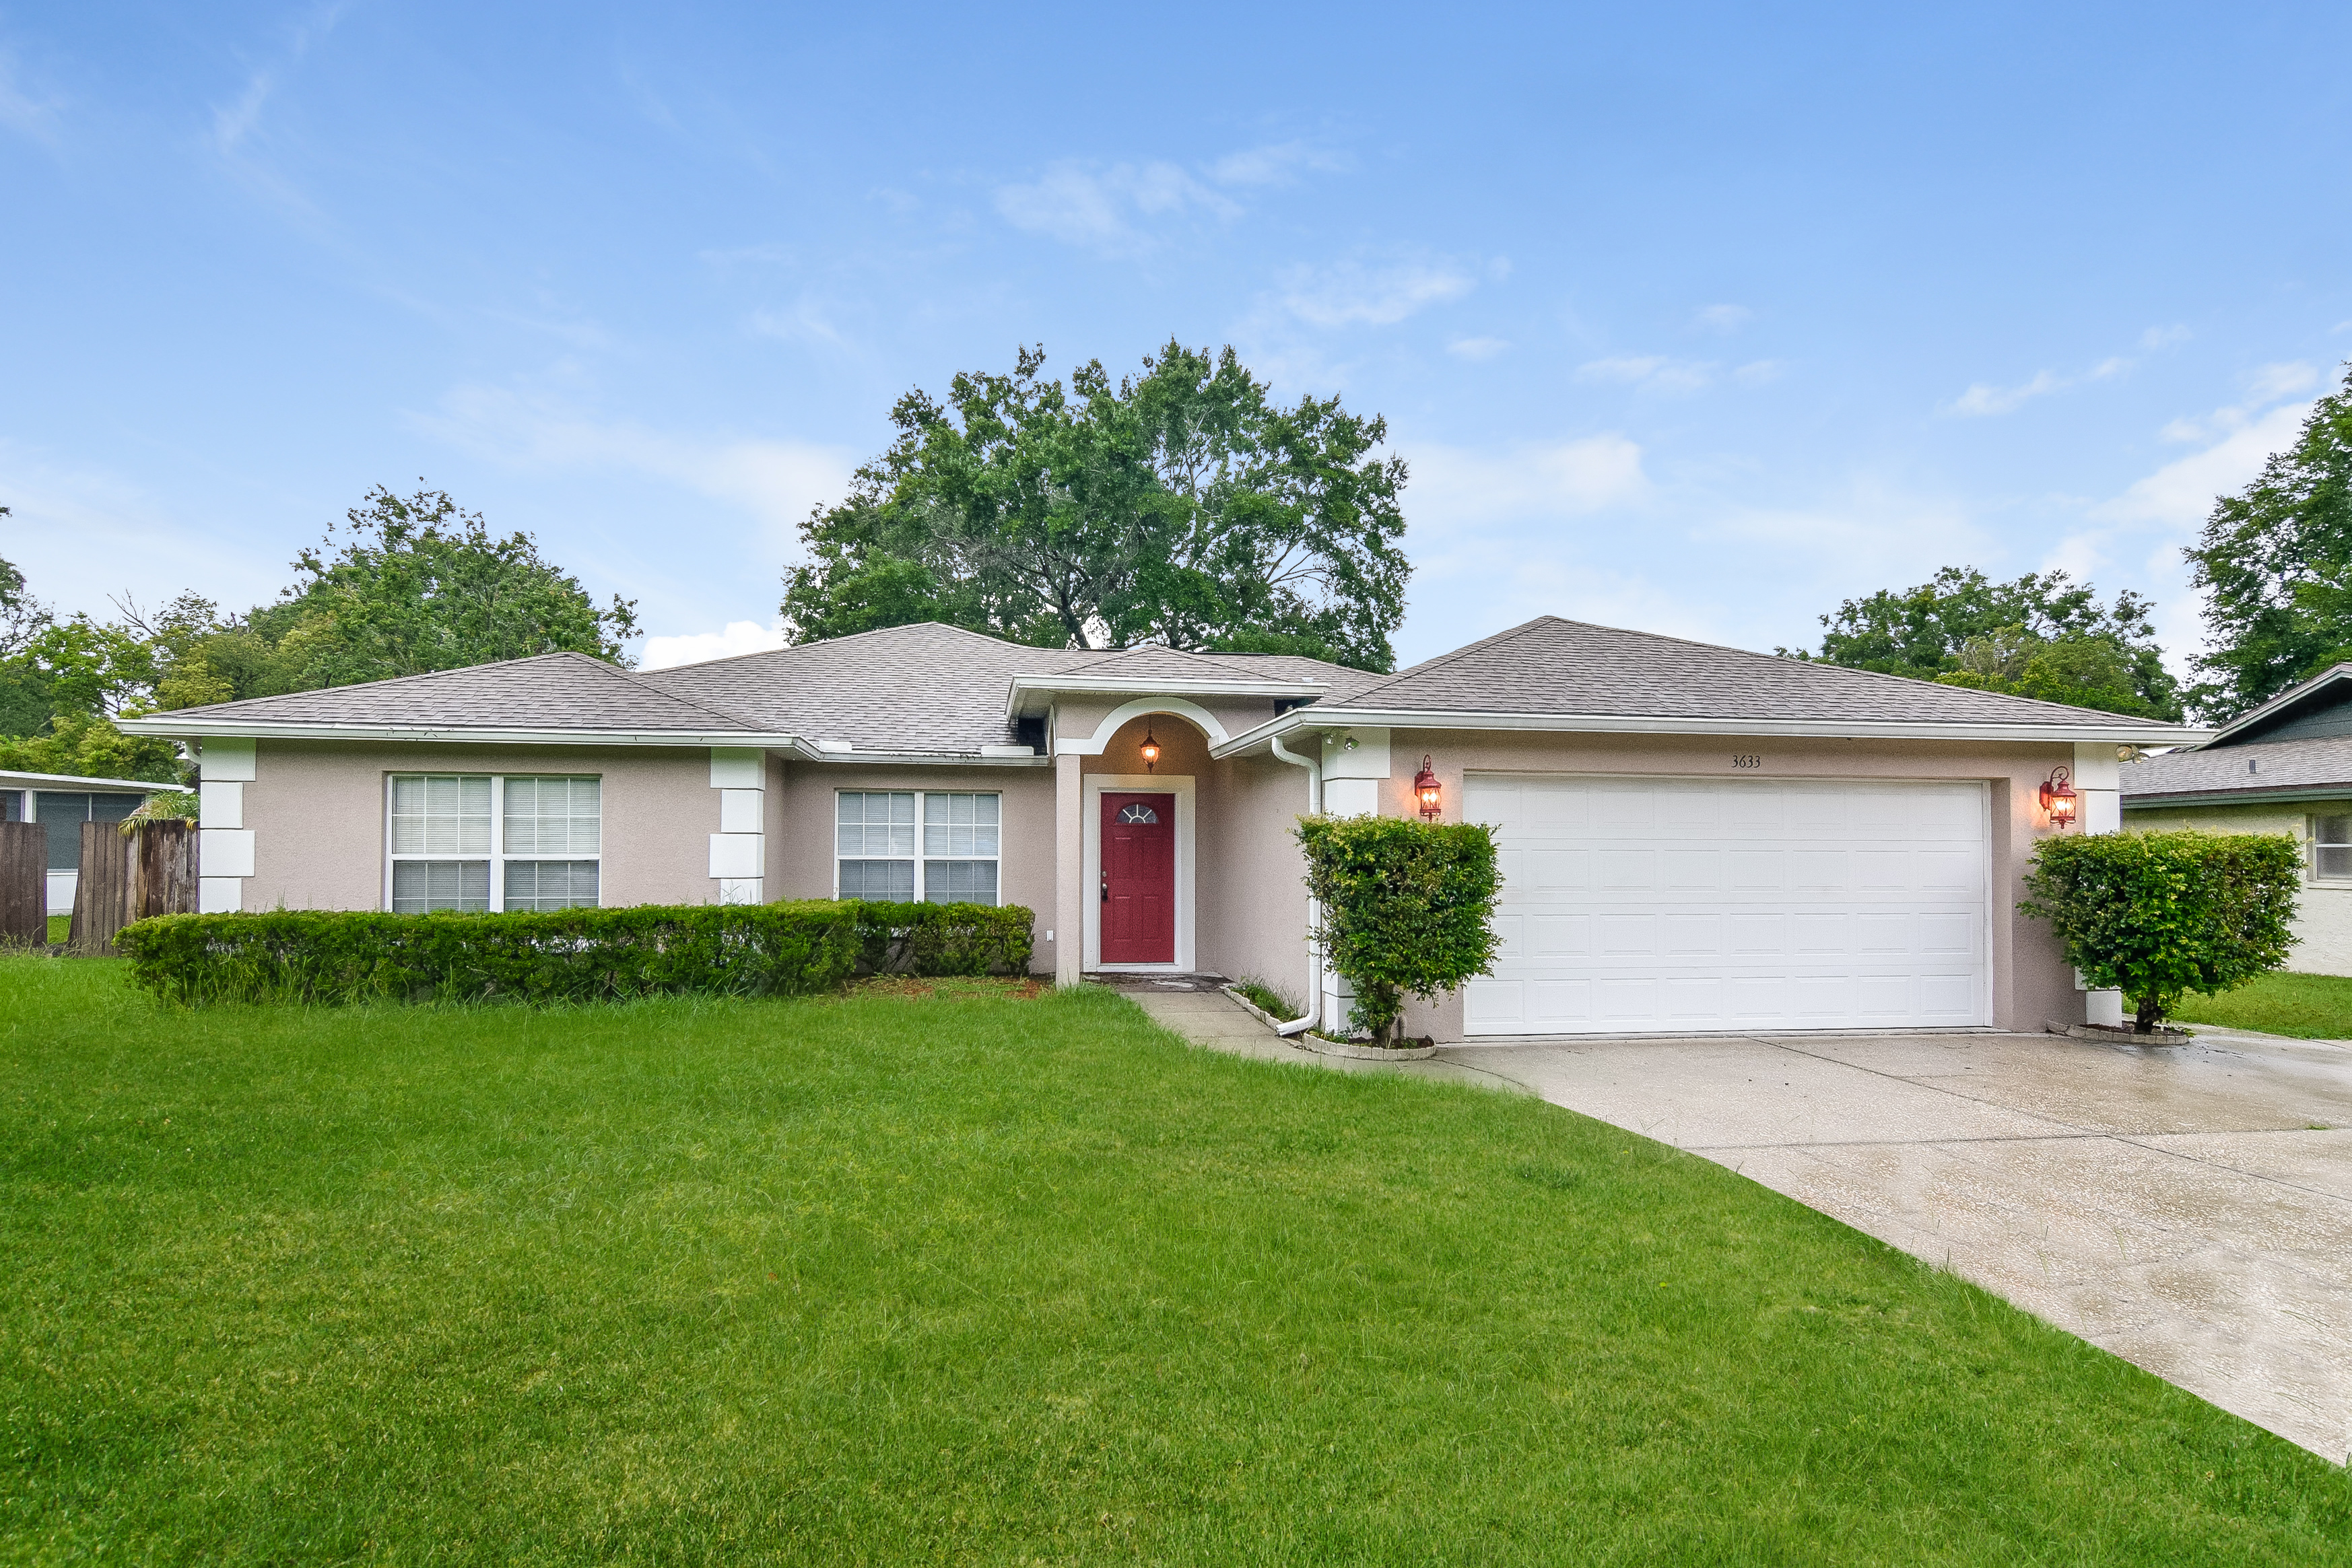 Photo of 3633 Greatwood Ct, Land O' Lakes, FL, 34639